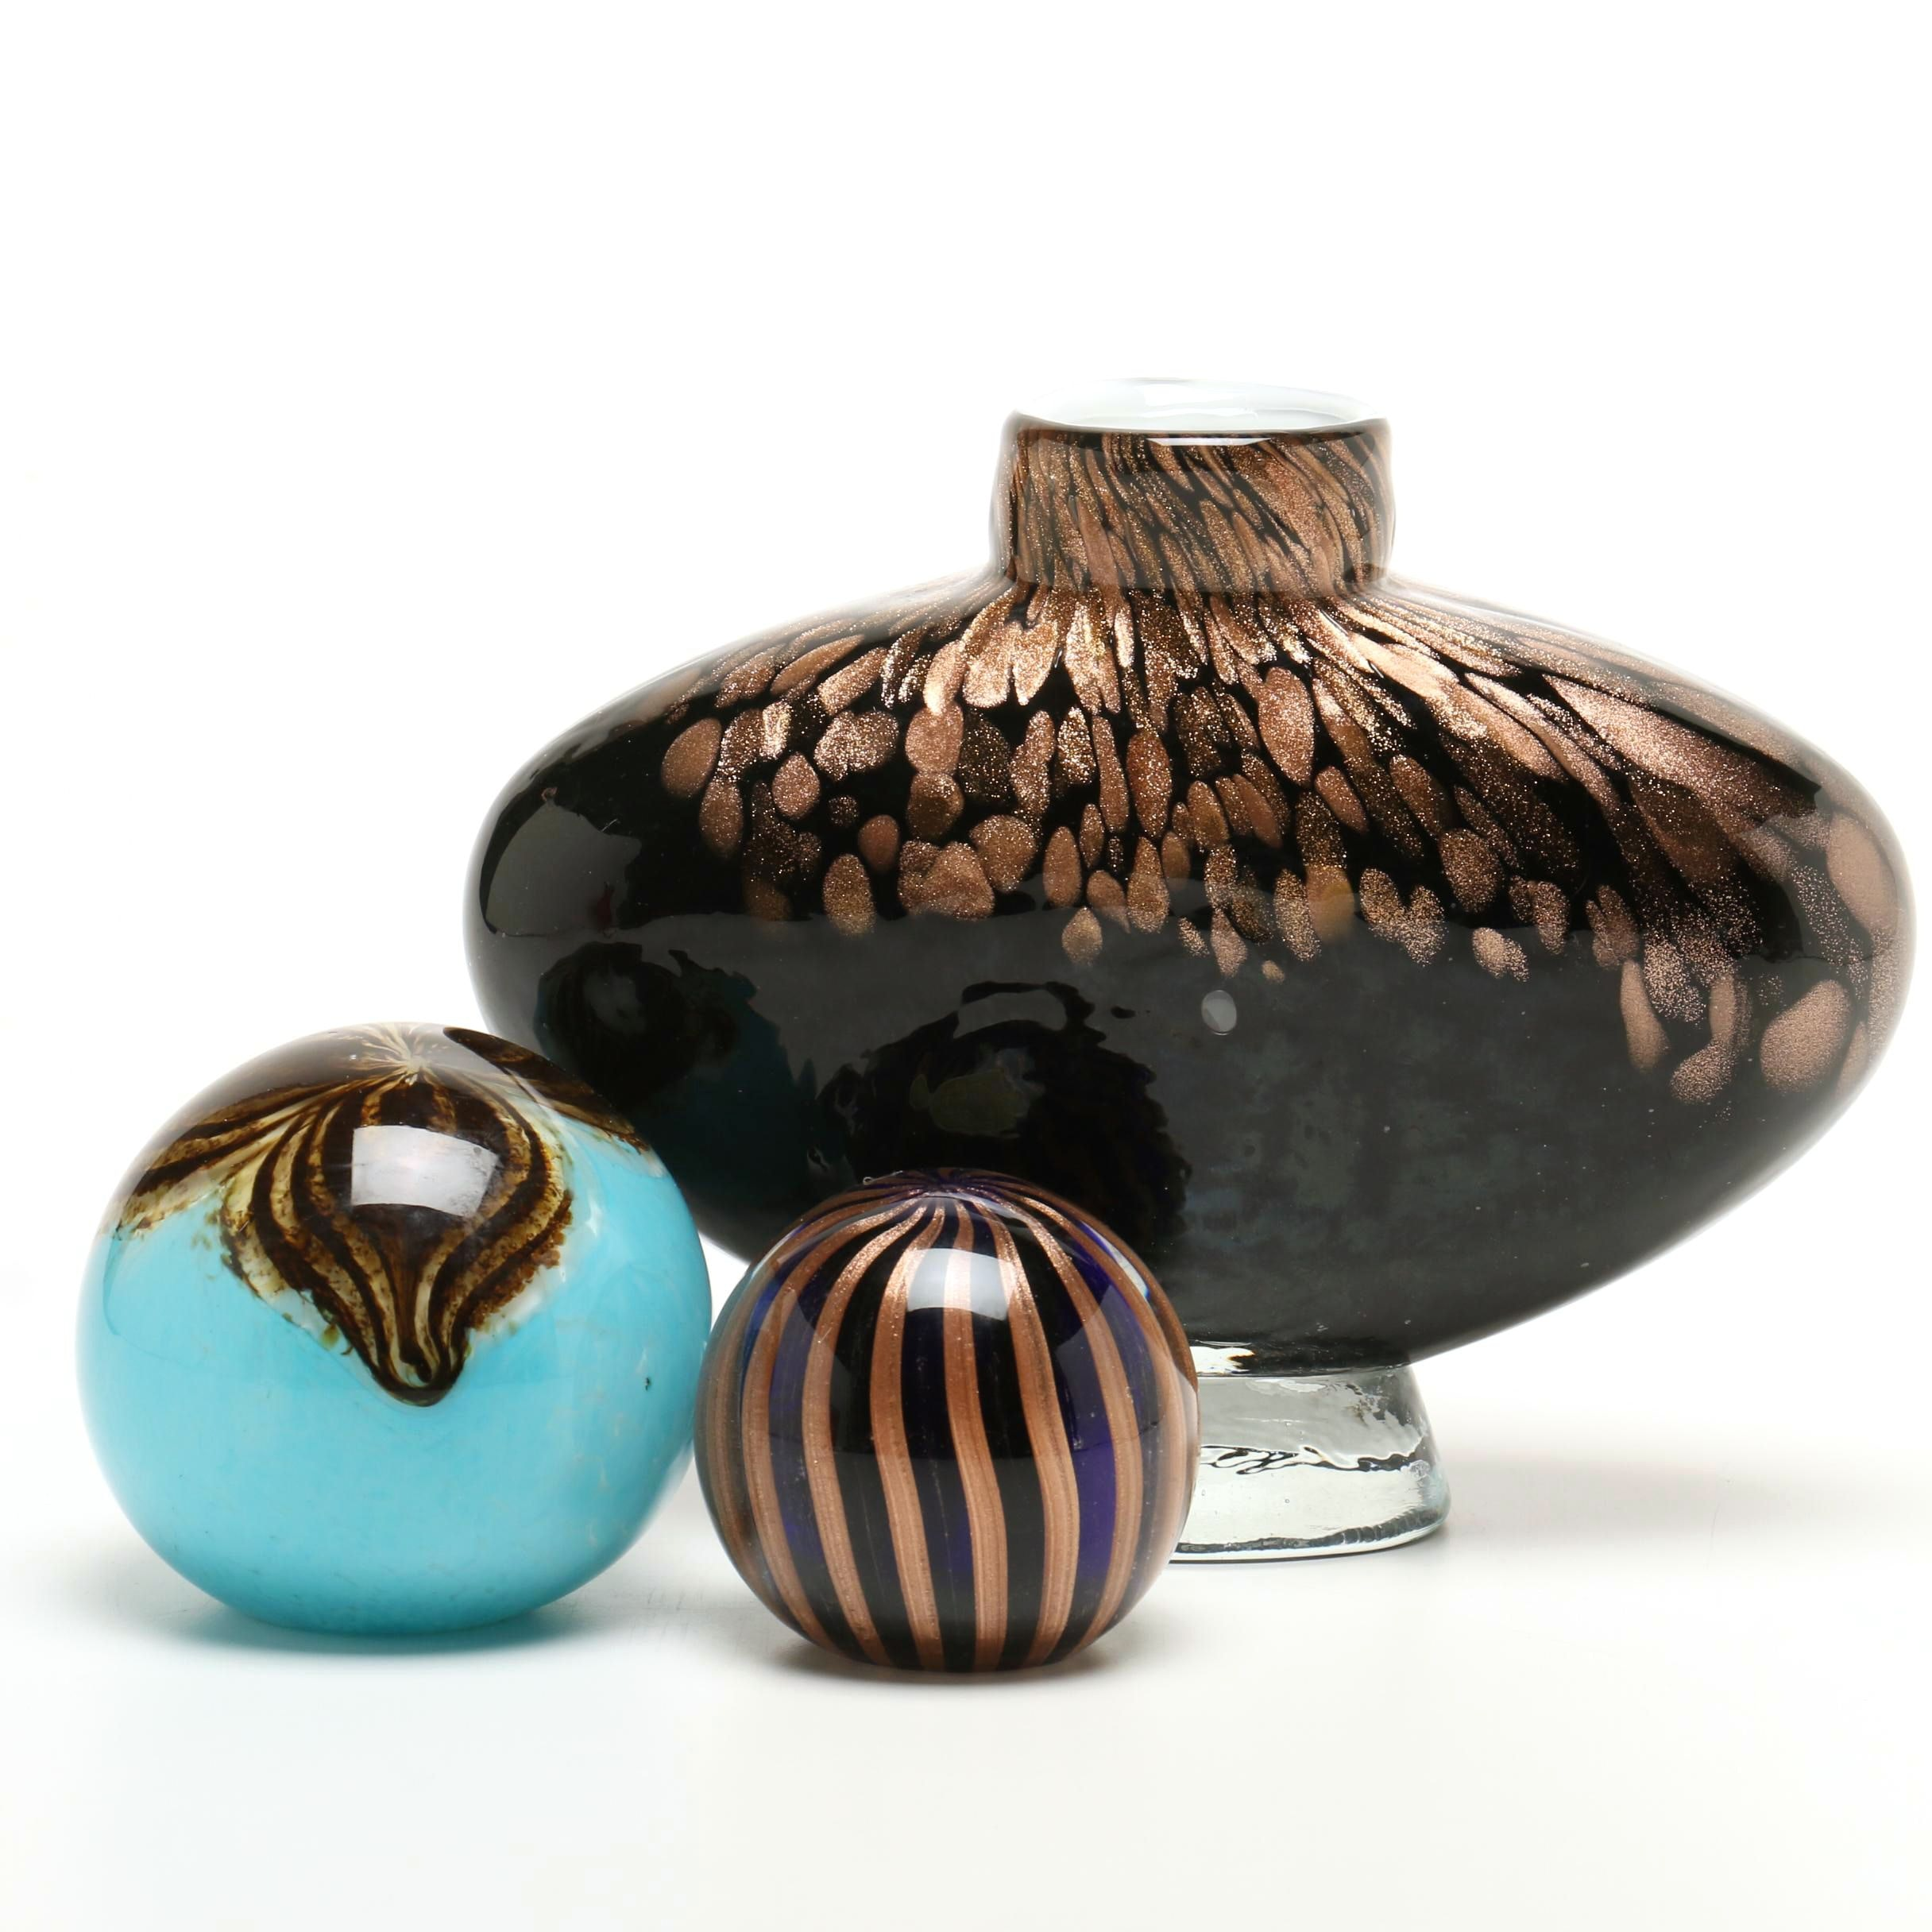 Saks Italian Paperweight with Vase and Blown Glass Orb